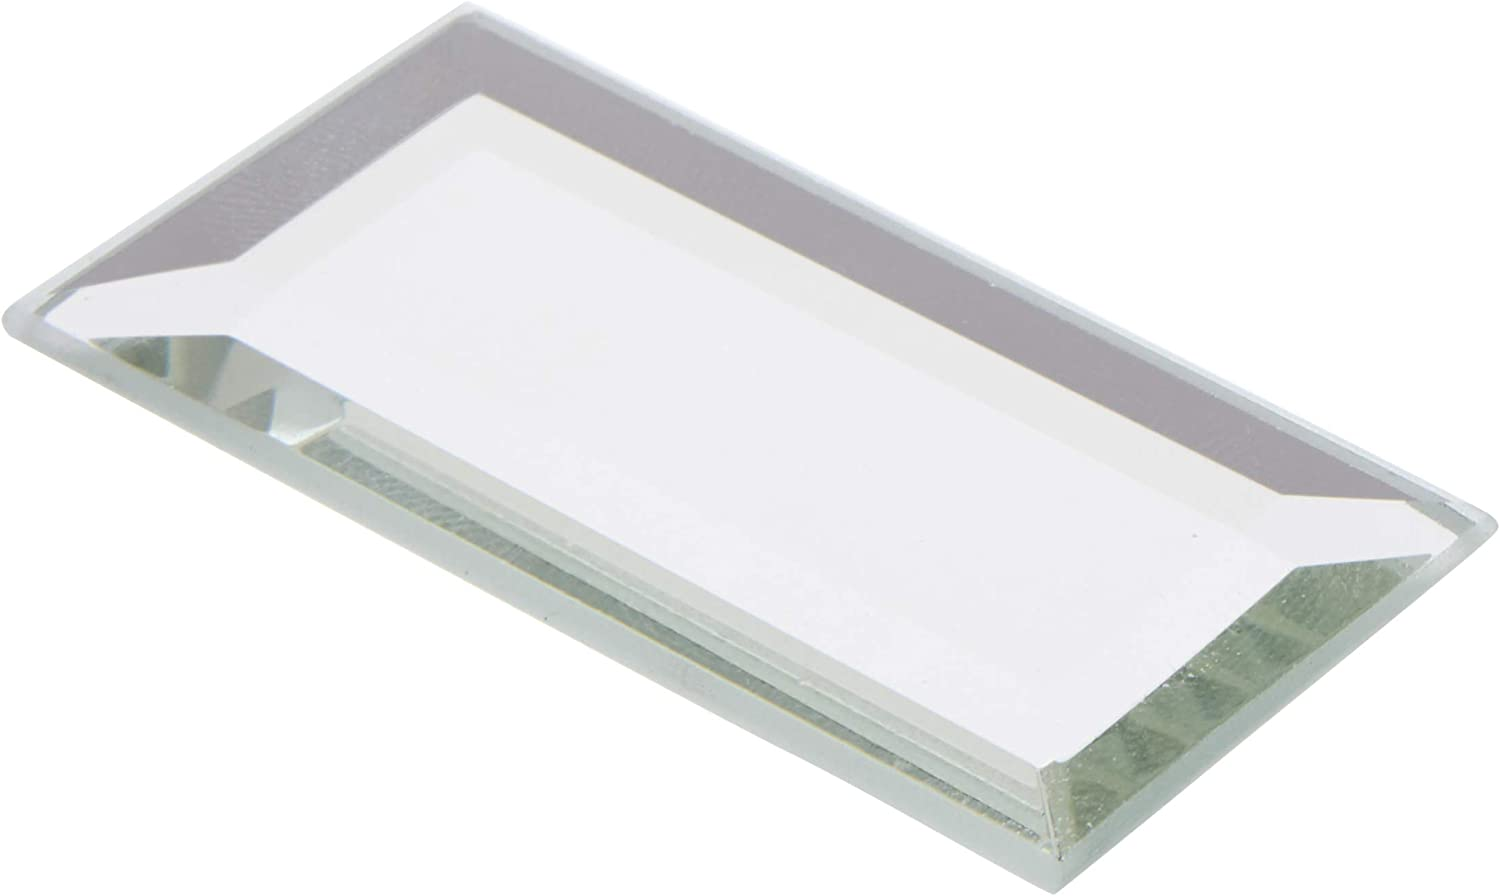 2 inch x 4 inch Plymor Rectangle 3mm Beveled Glass Mirror